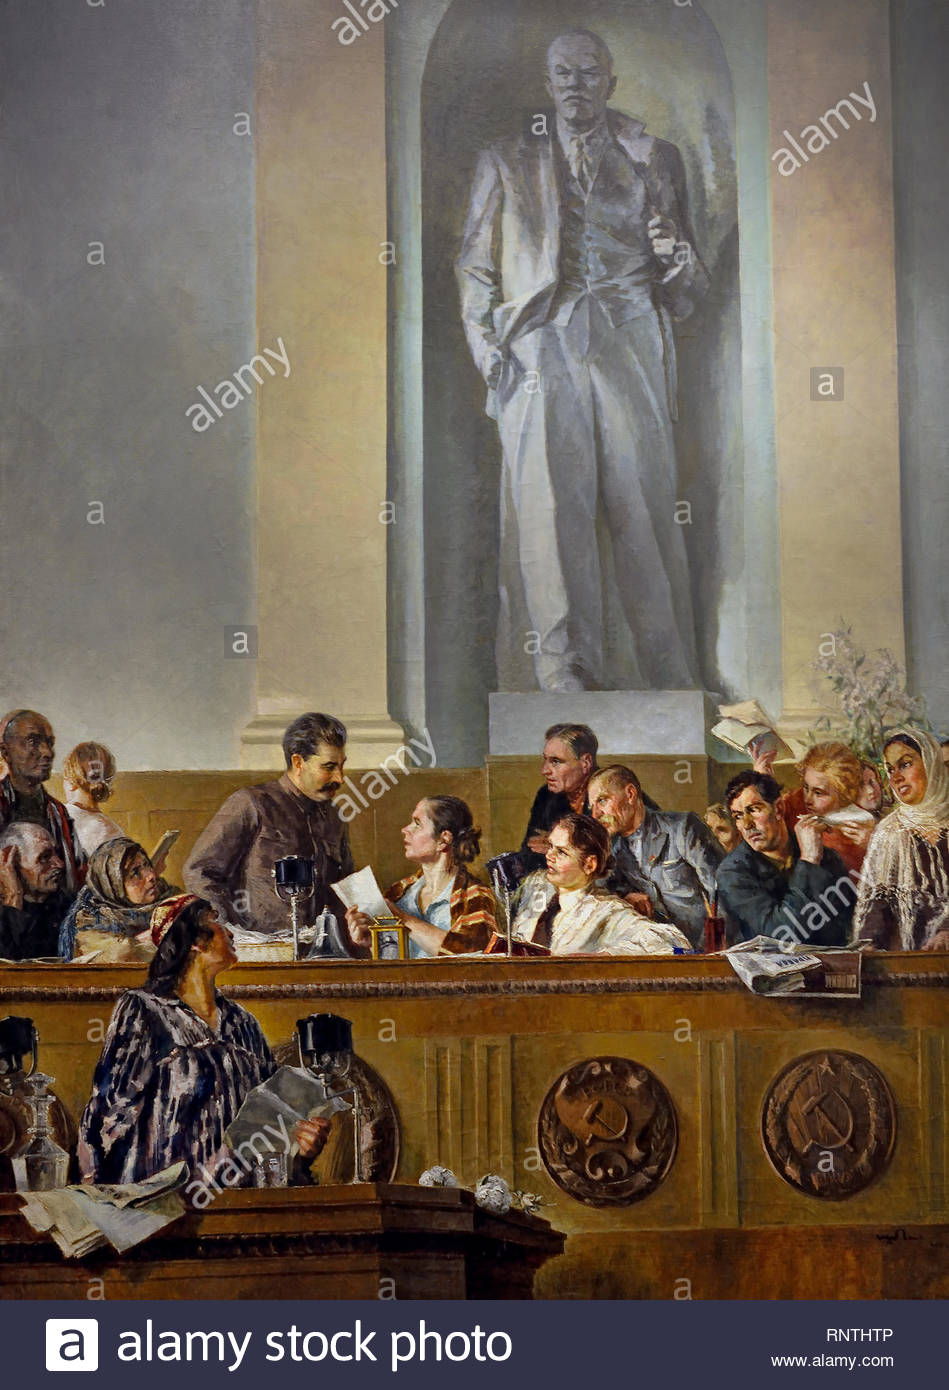 Stalin. The Leader, Teacher, and Comrade, 1937, by Grigory Shegal, Soviet Union Communist Propaganda (Russia under Lenin and Stalin1921-1953 ). - Stock Image